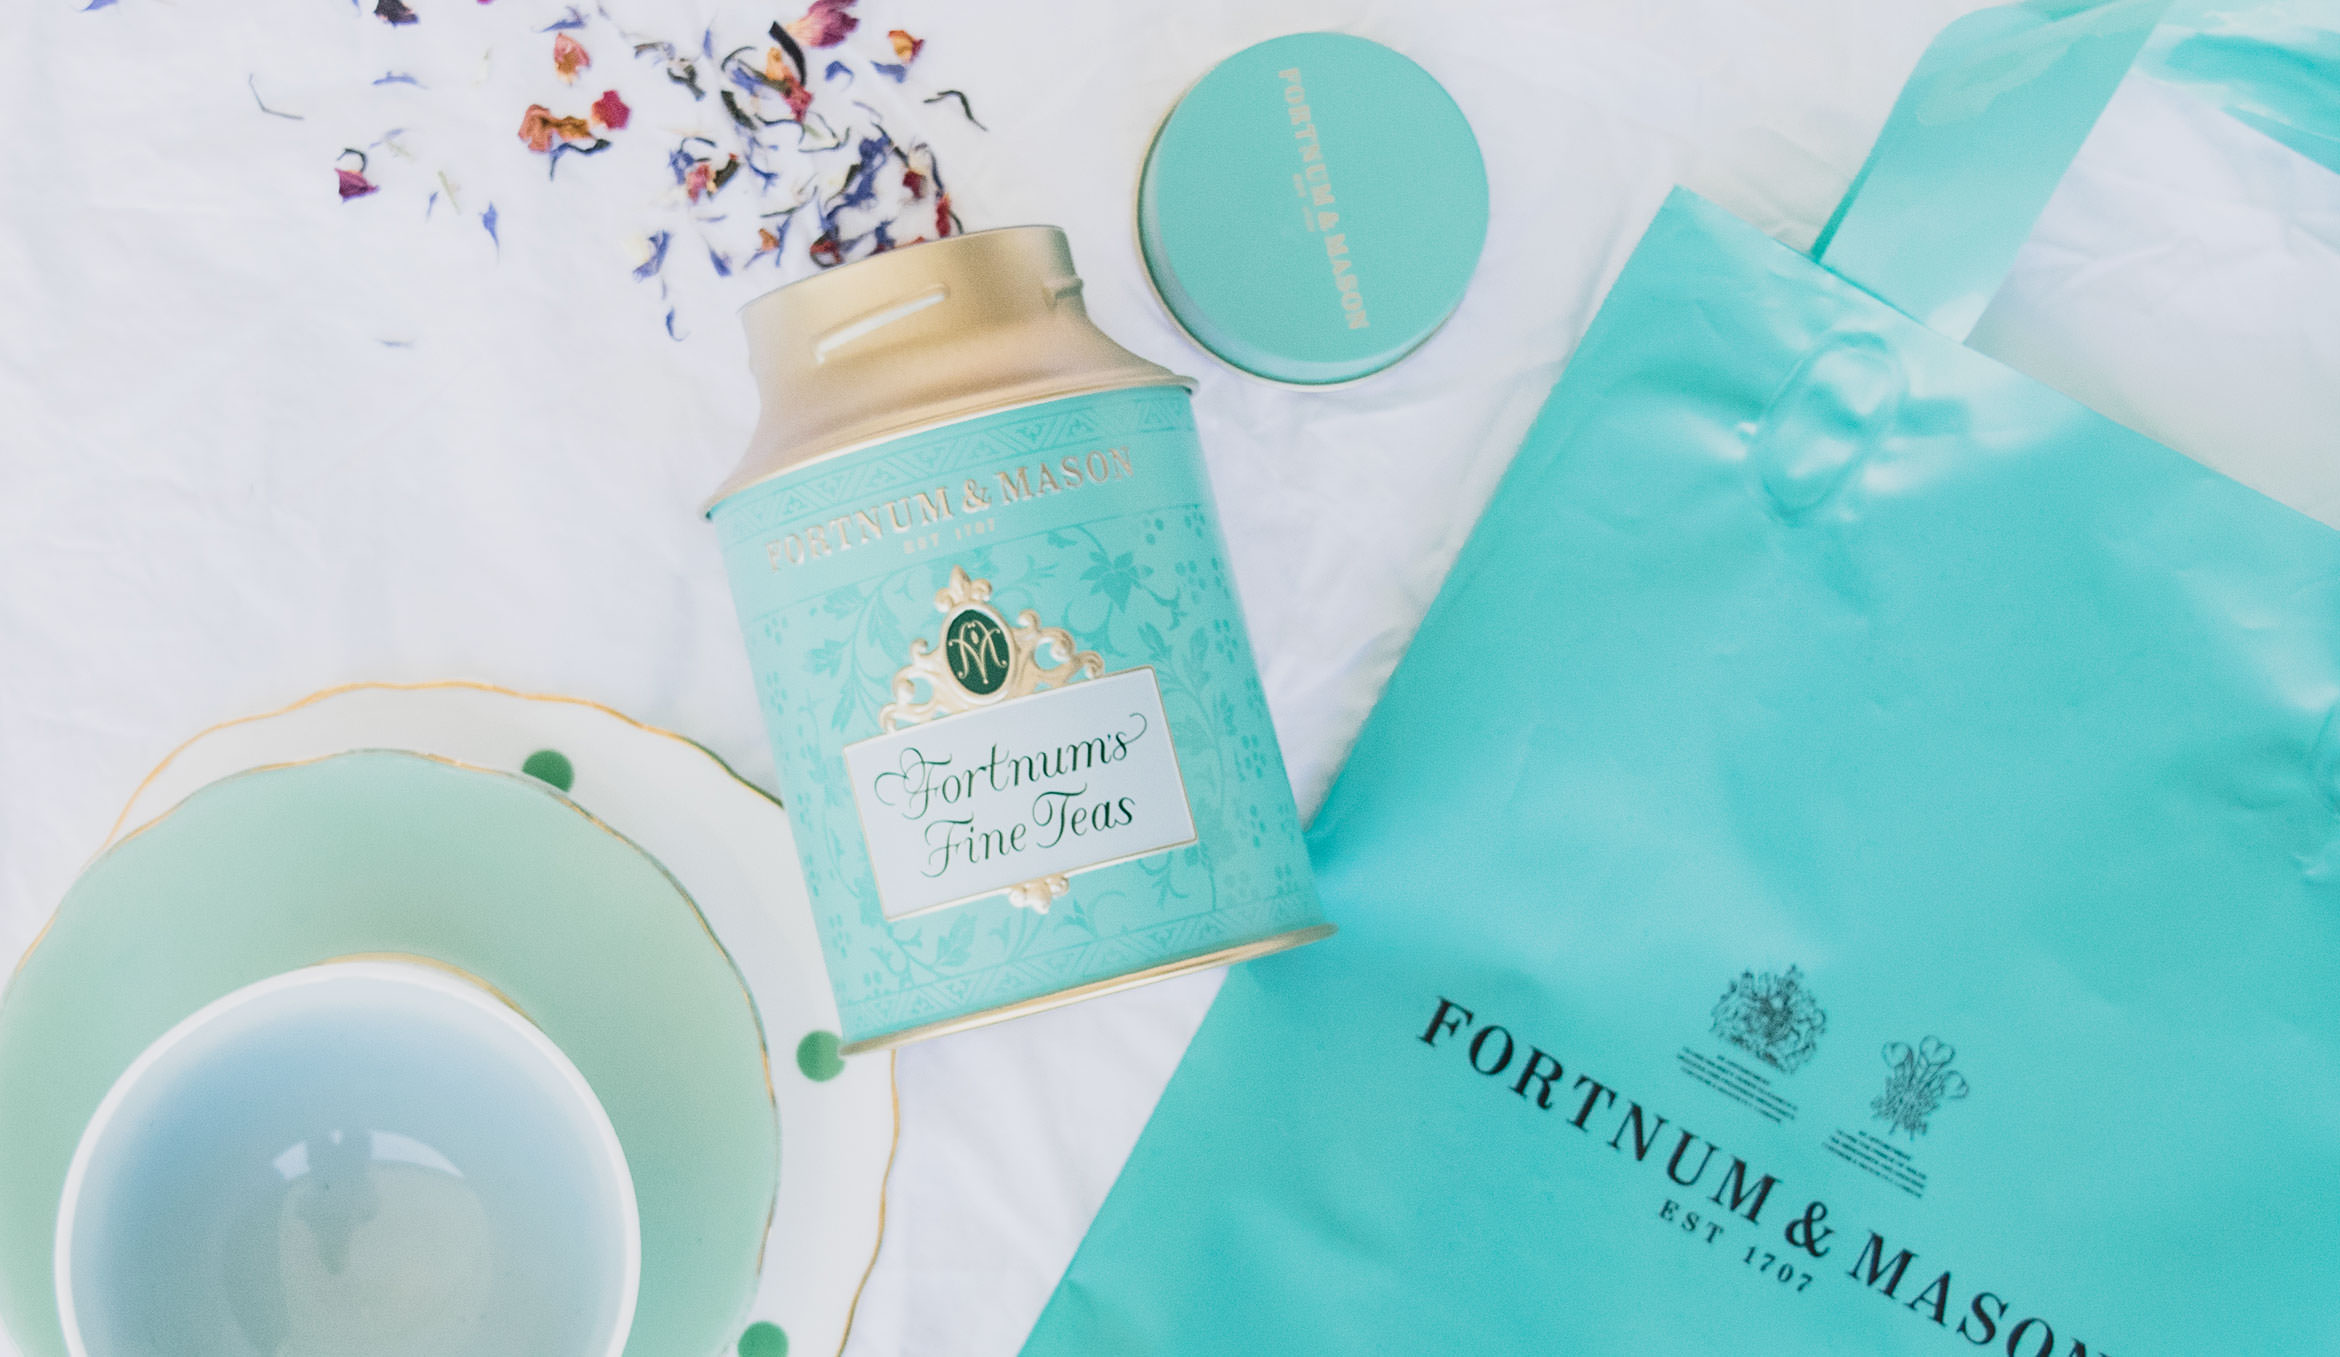 Prettiest Places to visit in London - Fortnum & Mason